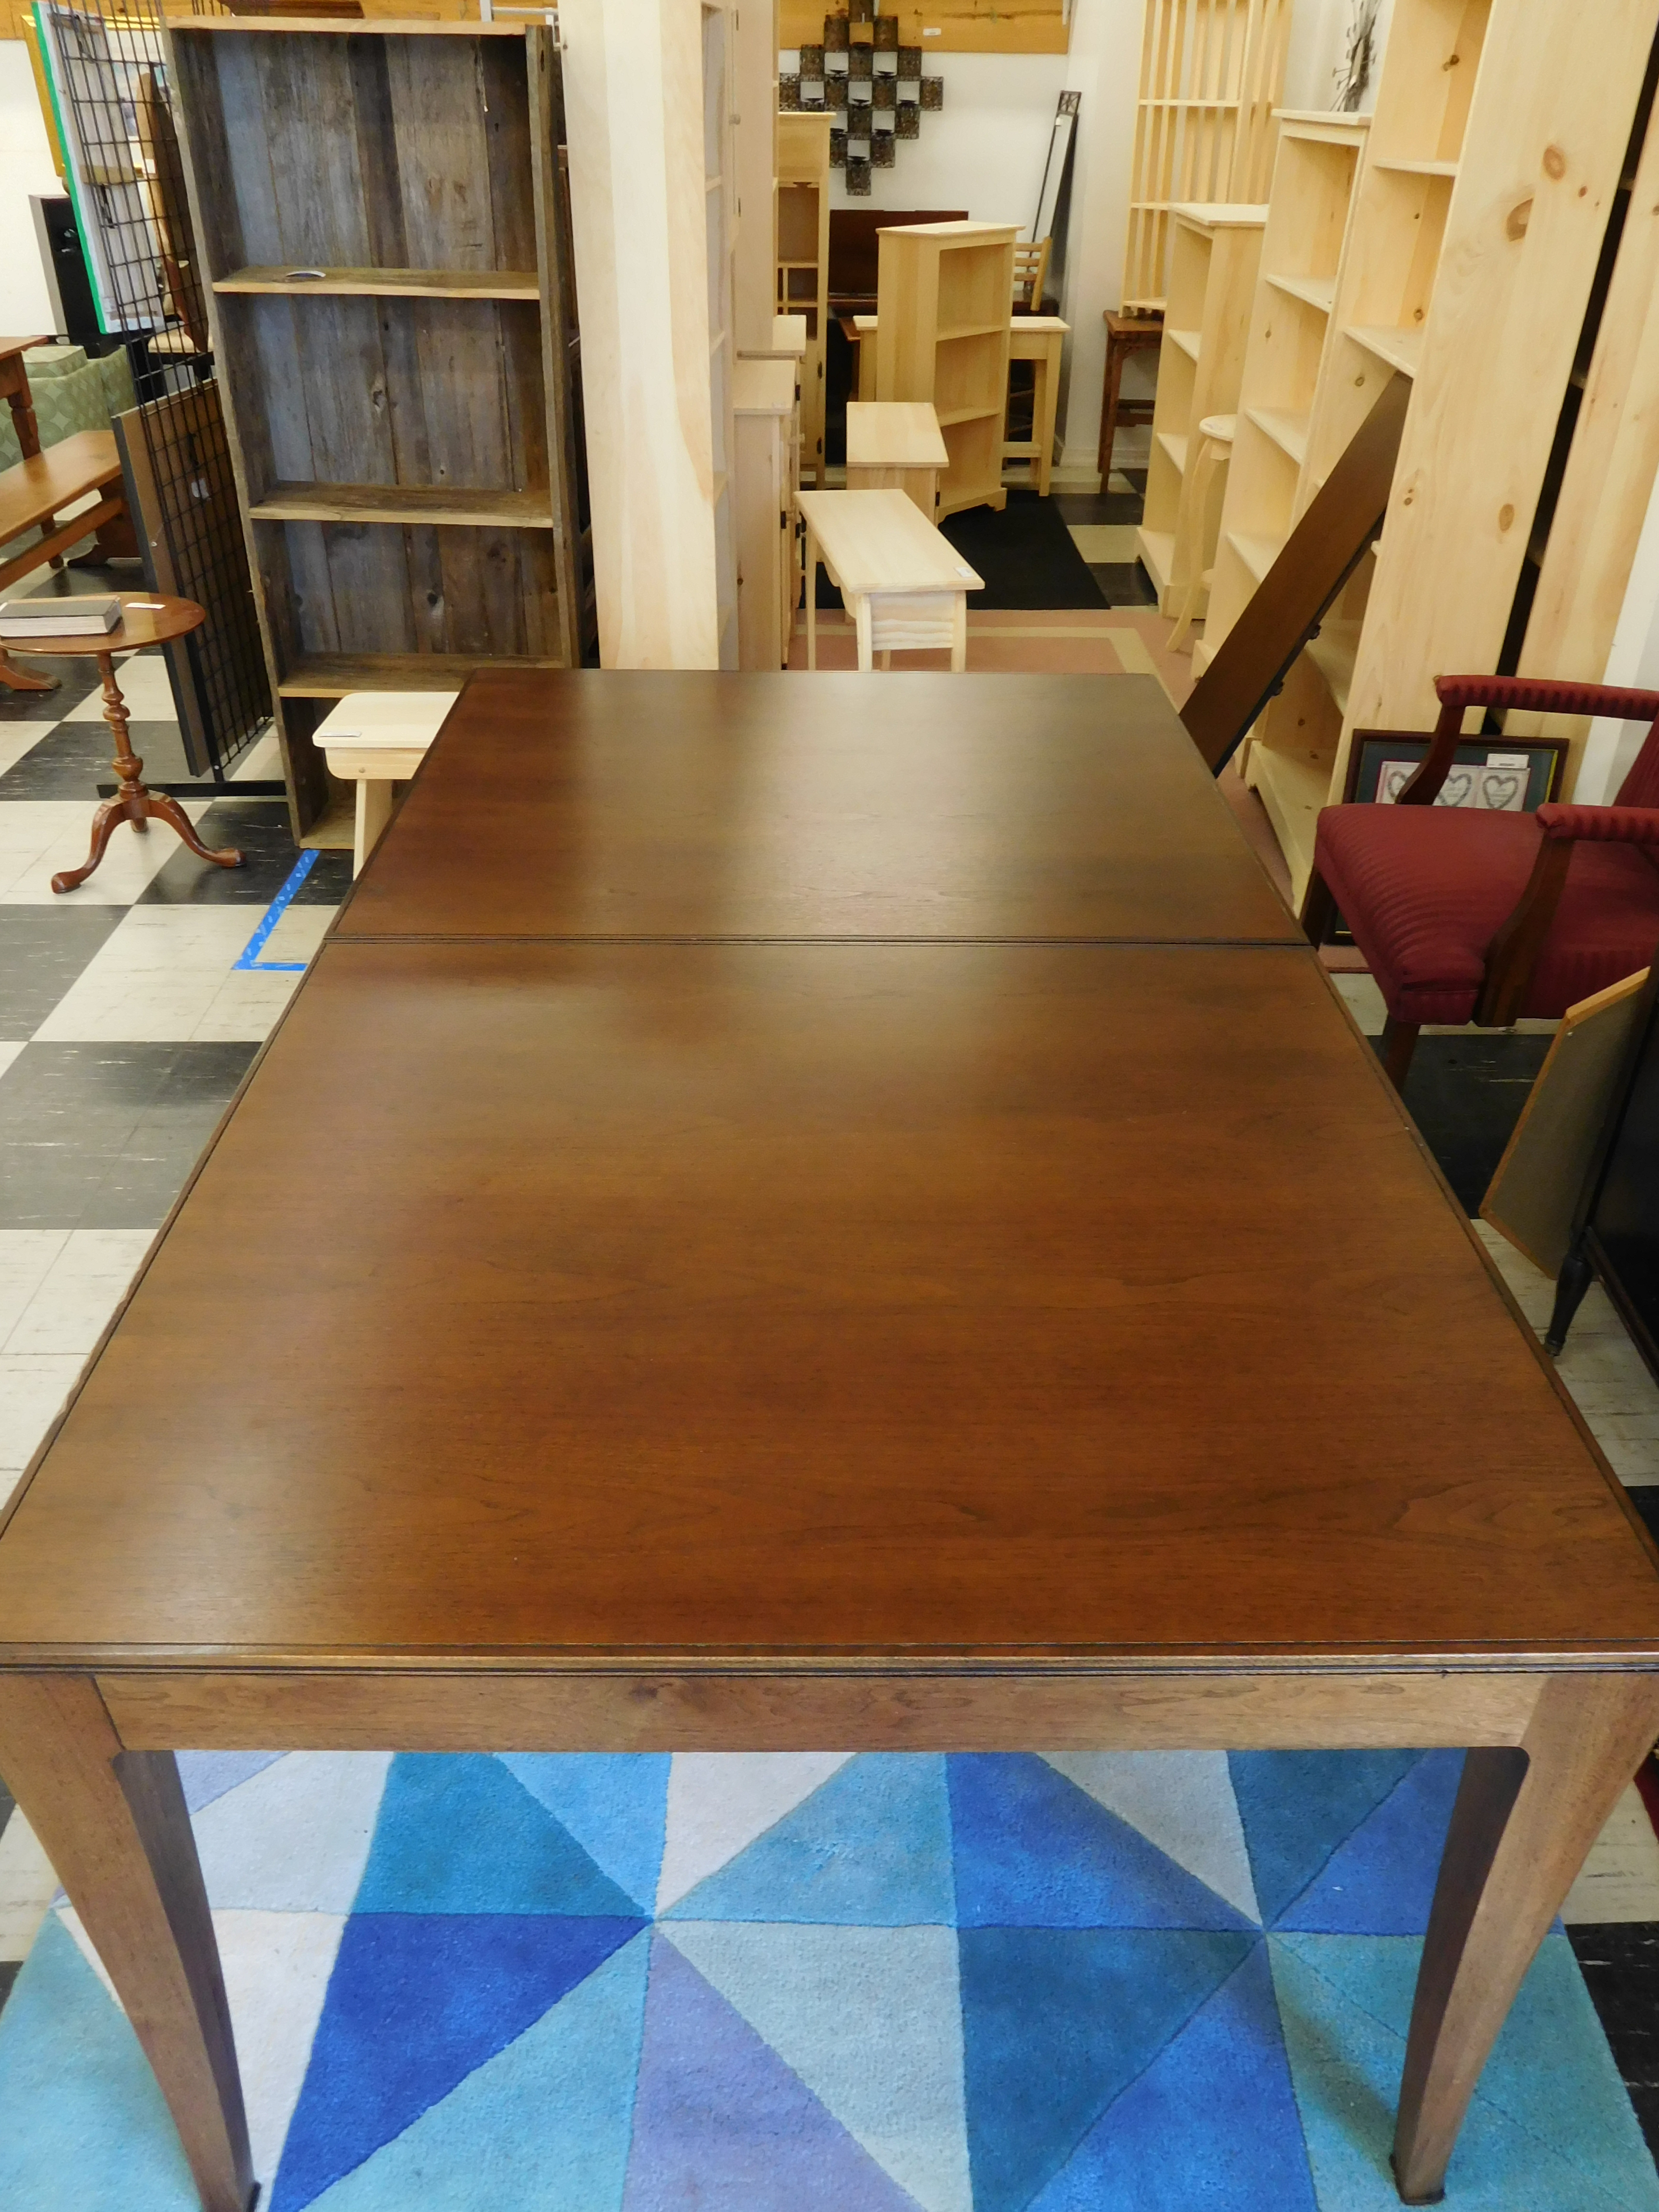 Solid Walnut Dining Table By Baker Furniture (1 Leaf)